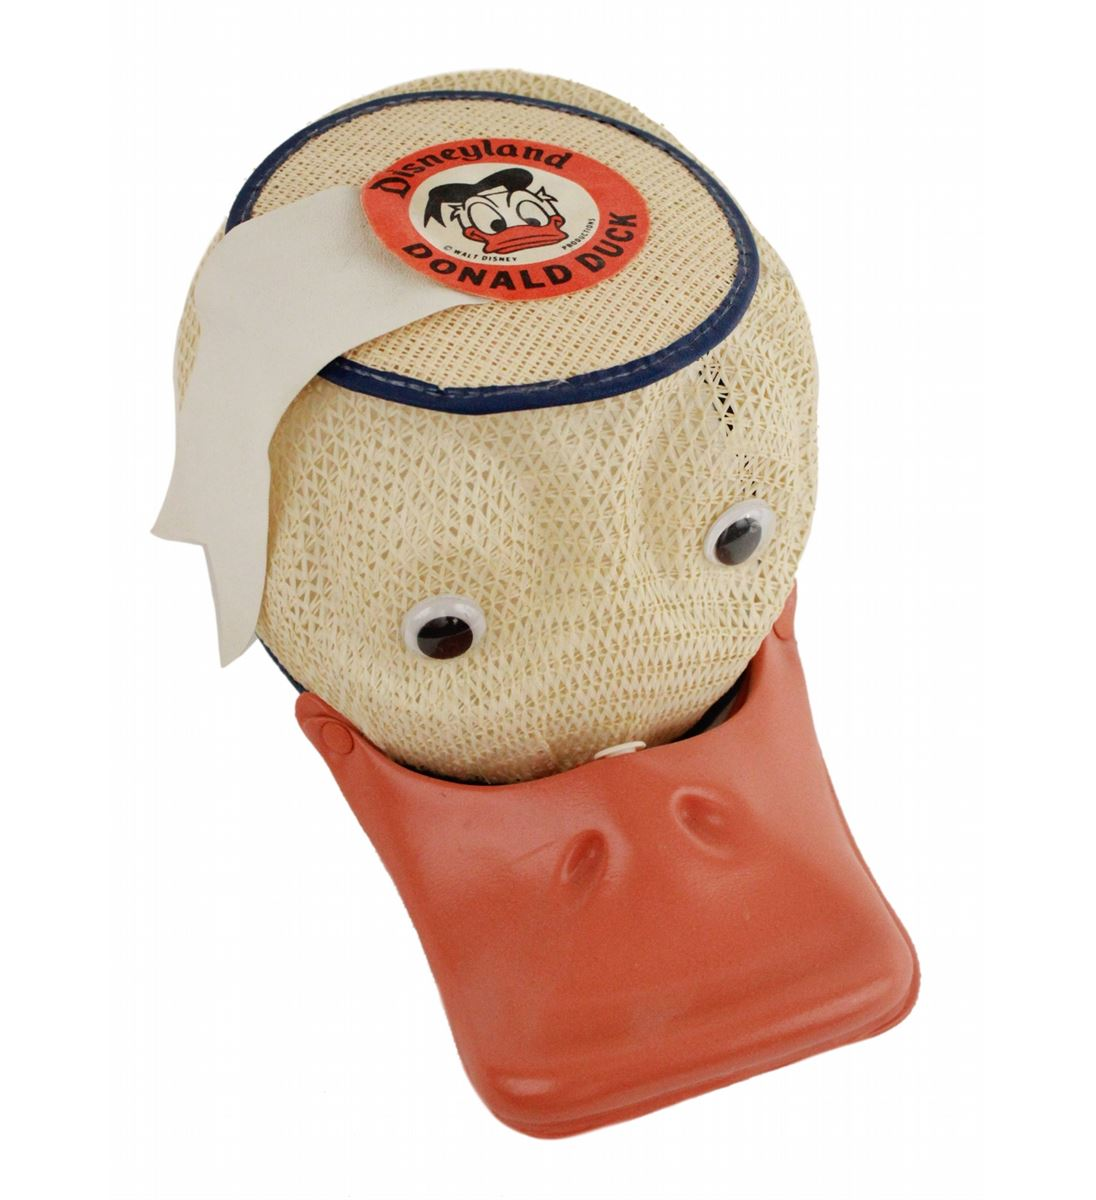 68f53c4919e Donald duck childs souvenir squeaker hat loading zoom jpg 1096x1200 Donald  duck no hat